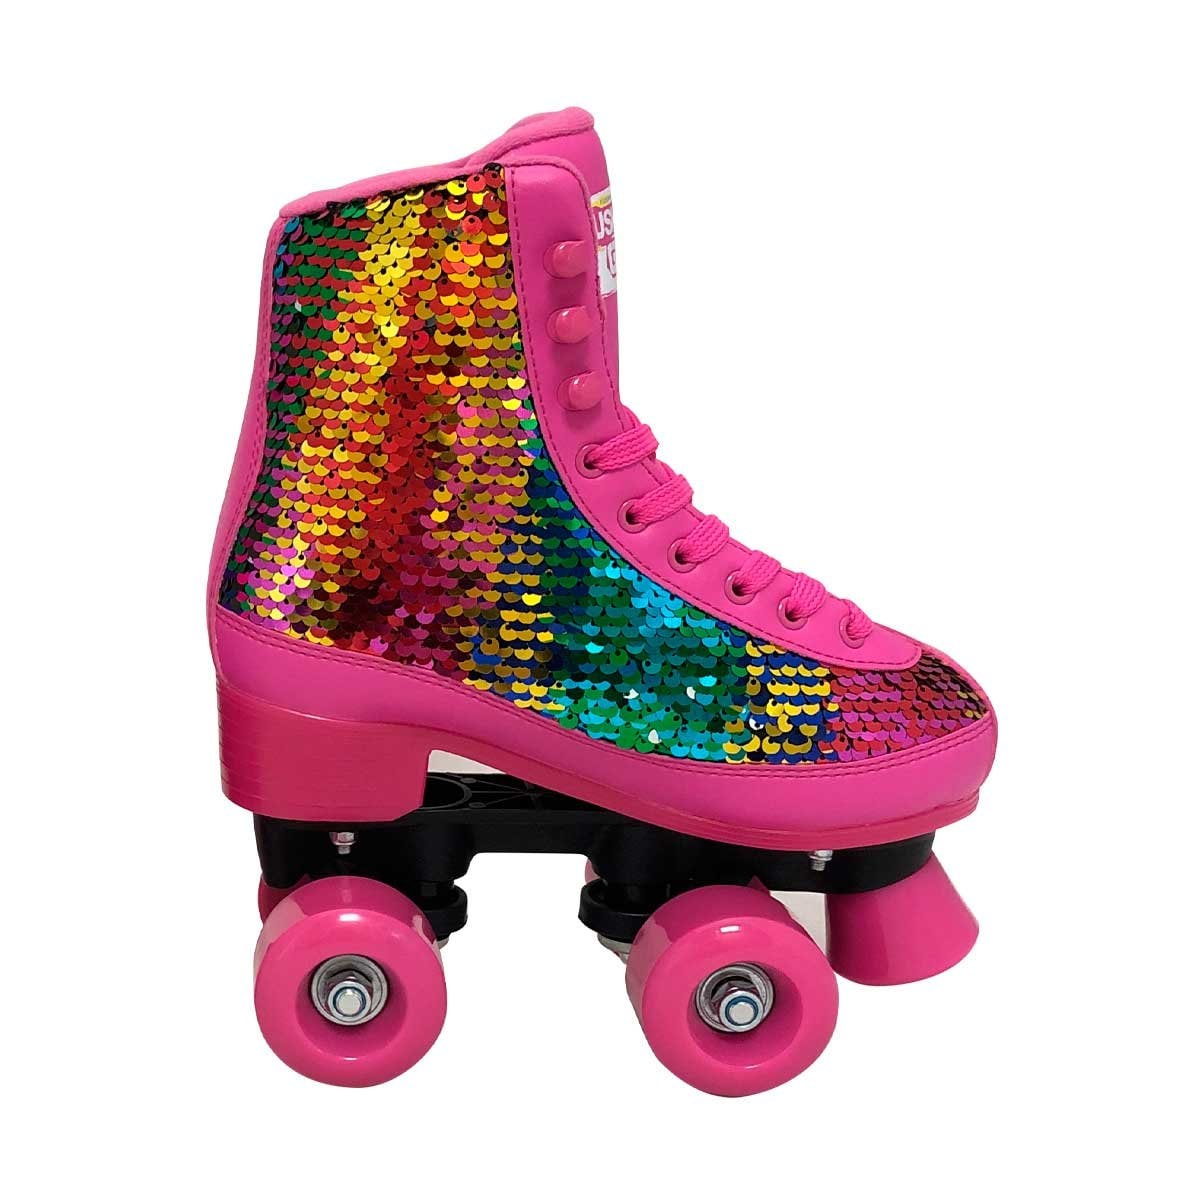 Patines Bota Rush Girl con Lentejuela Flying Wheel